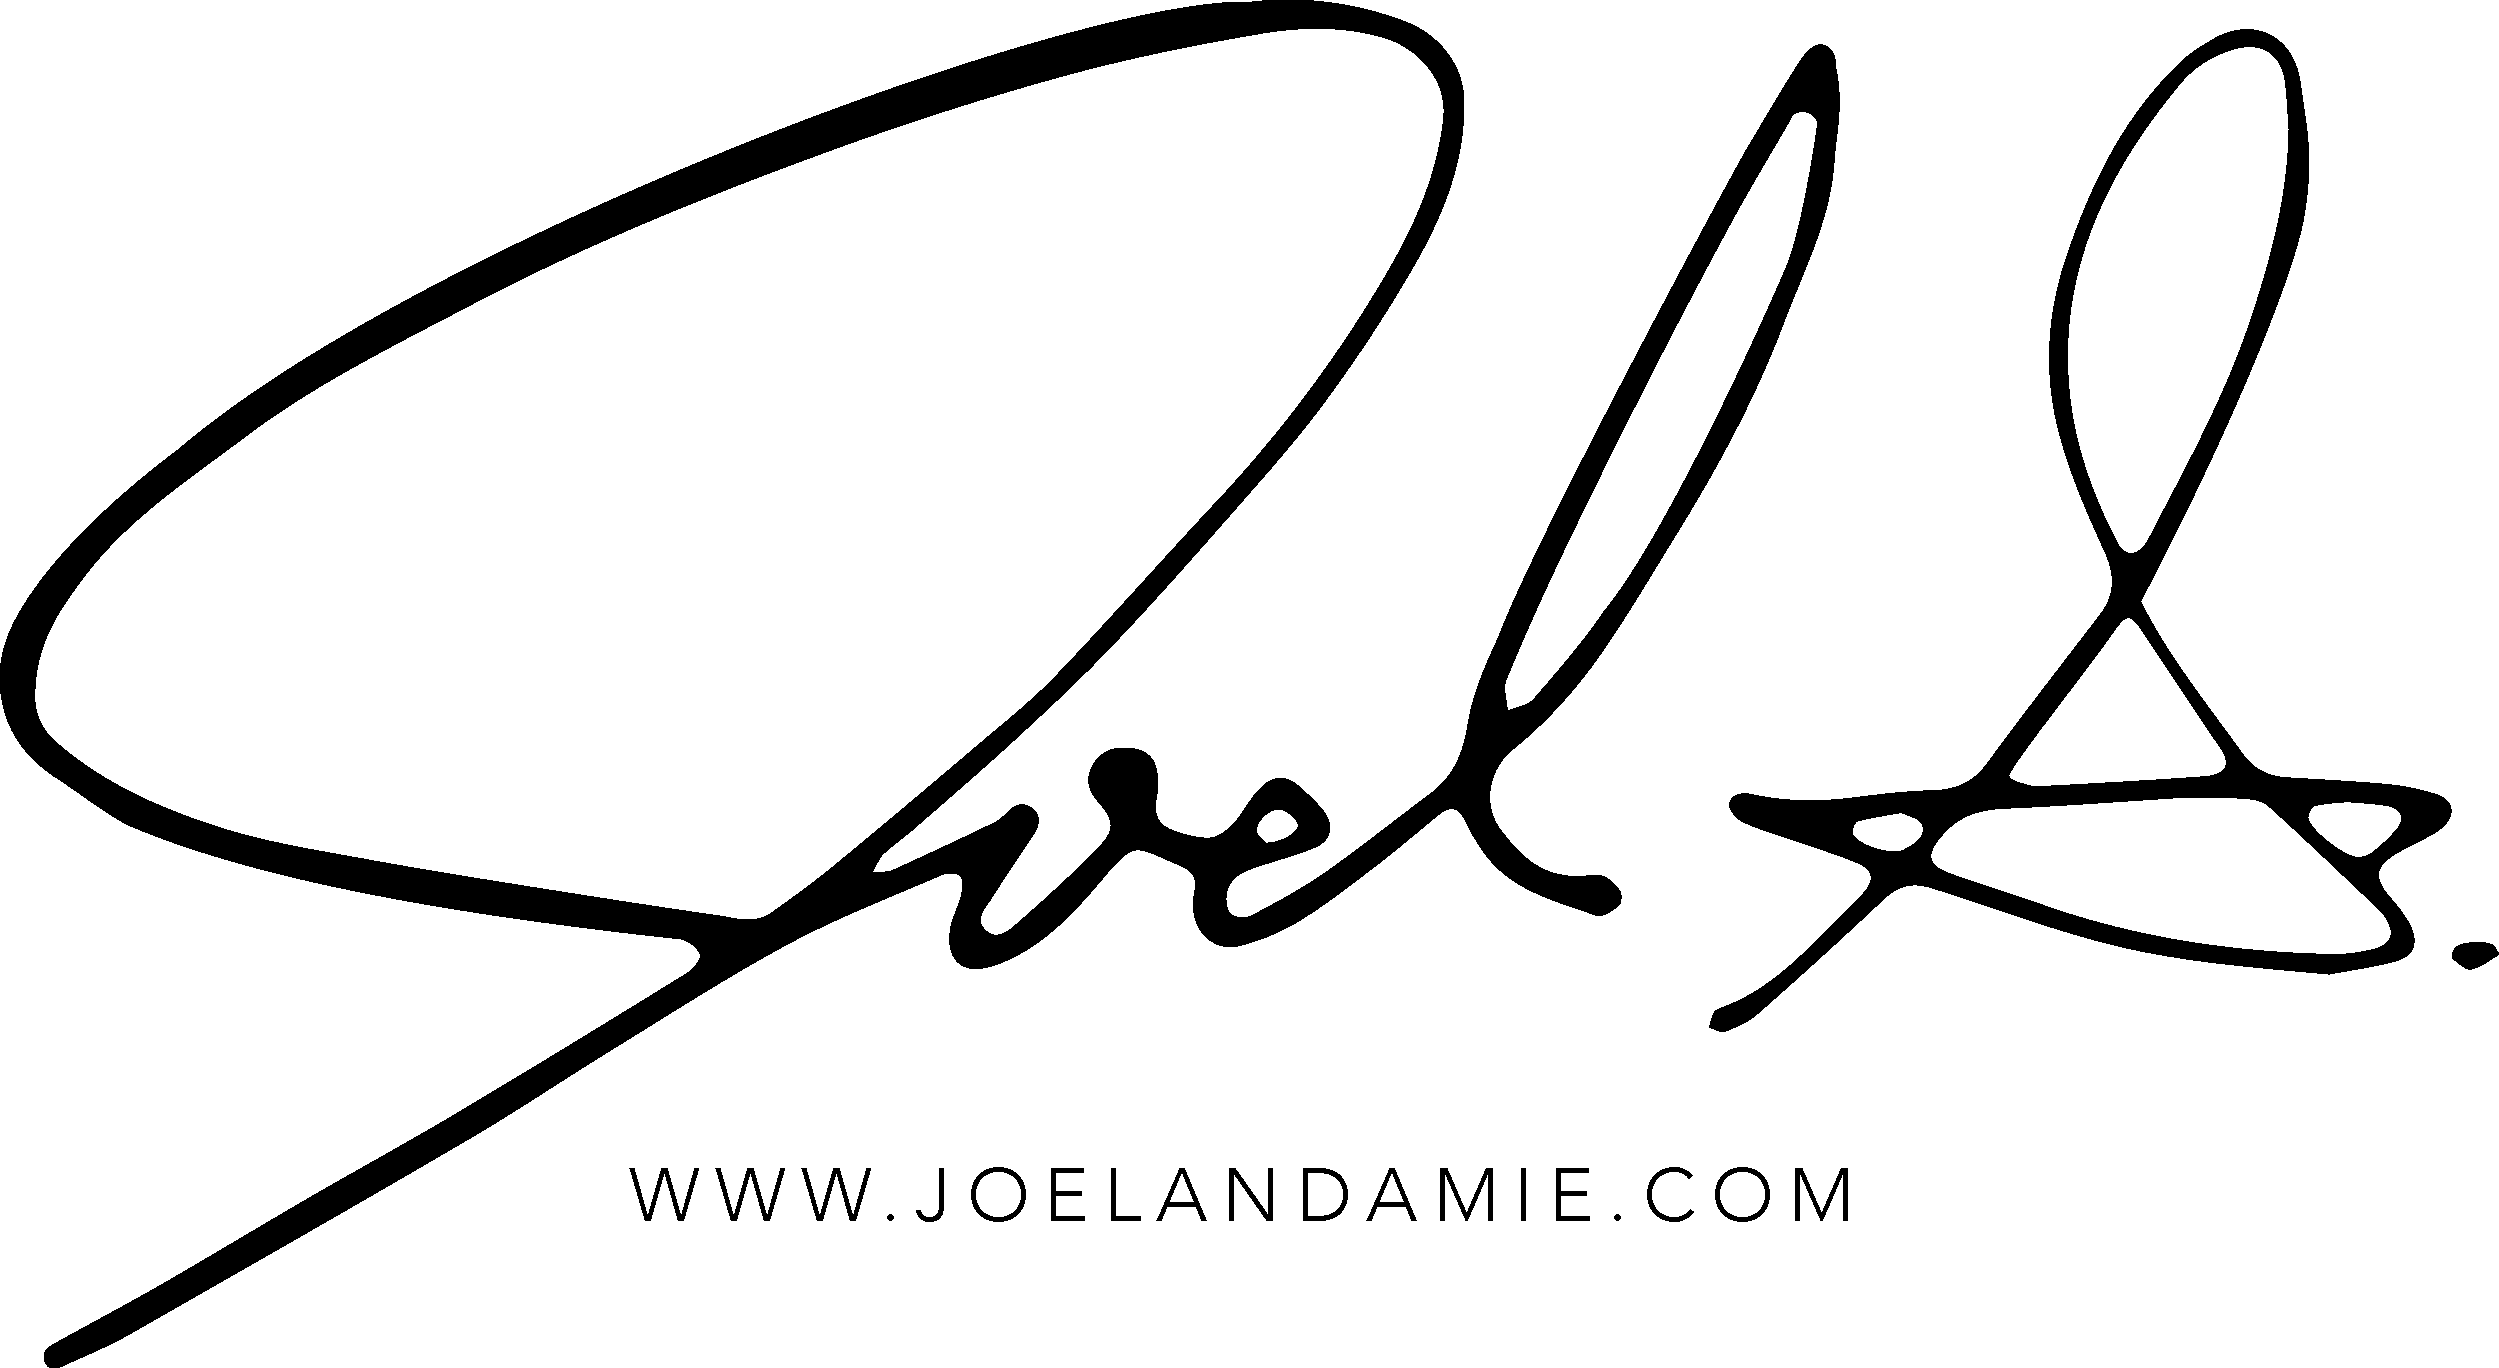 Click to download the PNG file for Joel's official logo